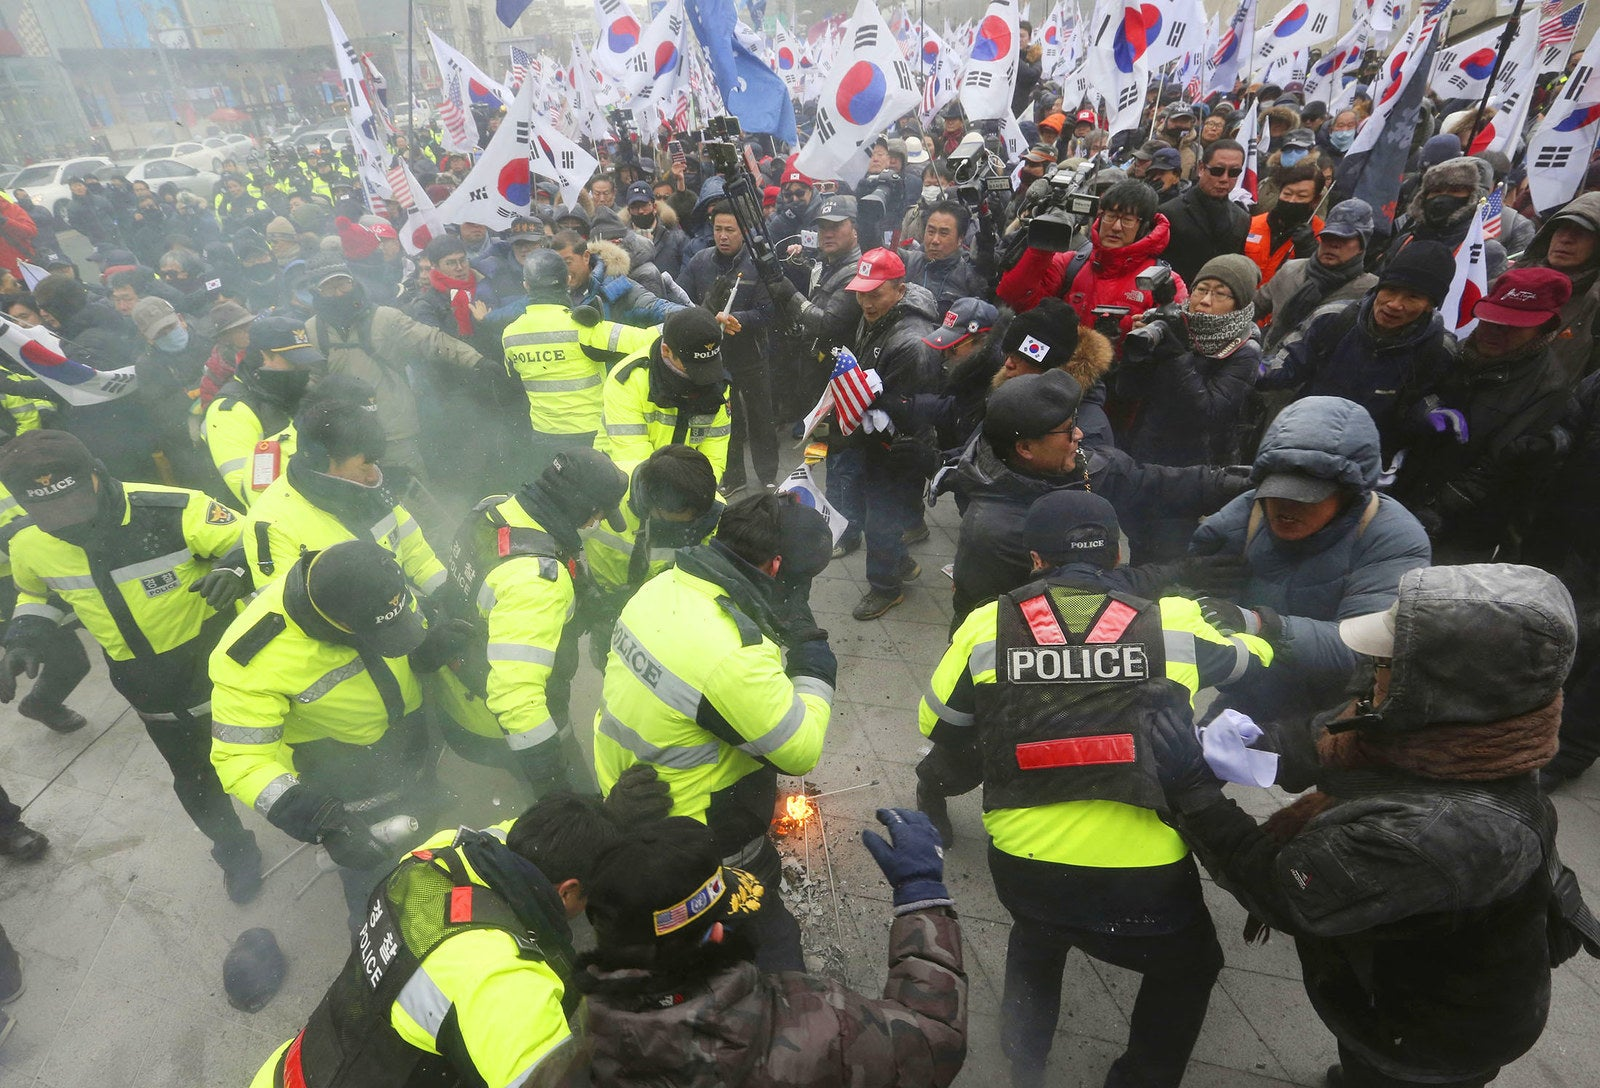 Protesters scuffle with police officers during a rally protesting North Korea's participation in the Pyeongchang 2018 Winter Olympics, in Seoul on Feb. 11.